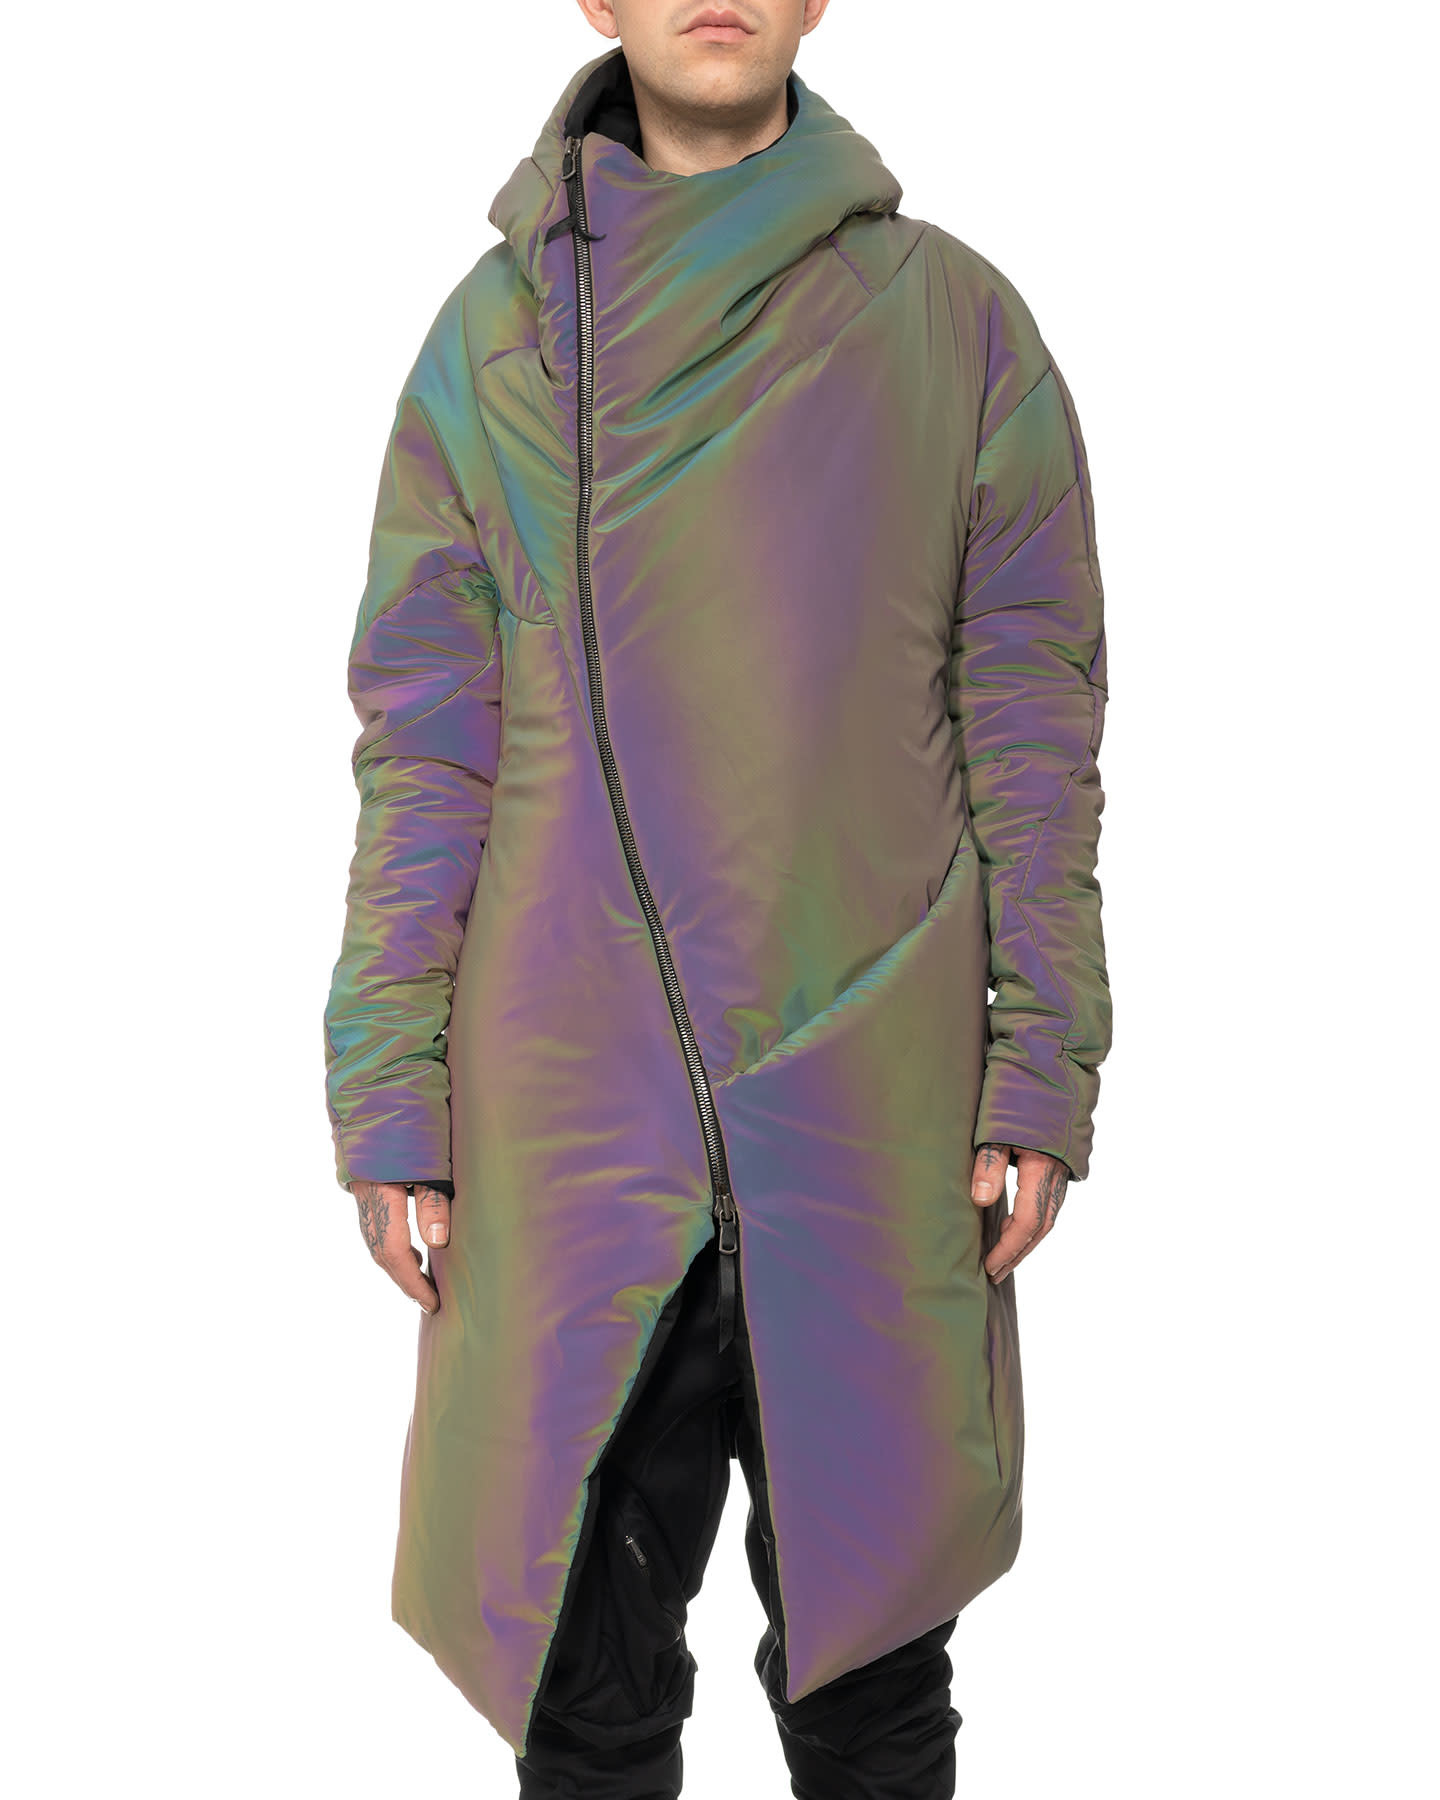 DISTORTION CURVED HOODED COAT - OIL SPILL